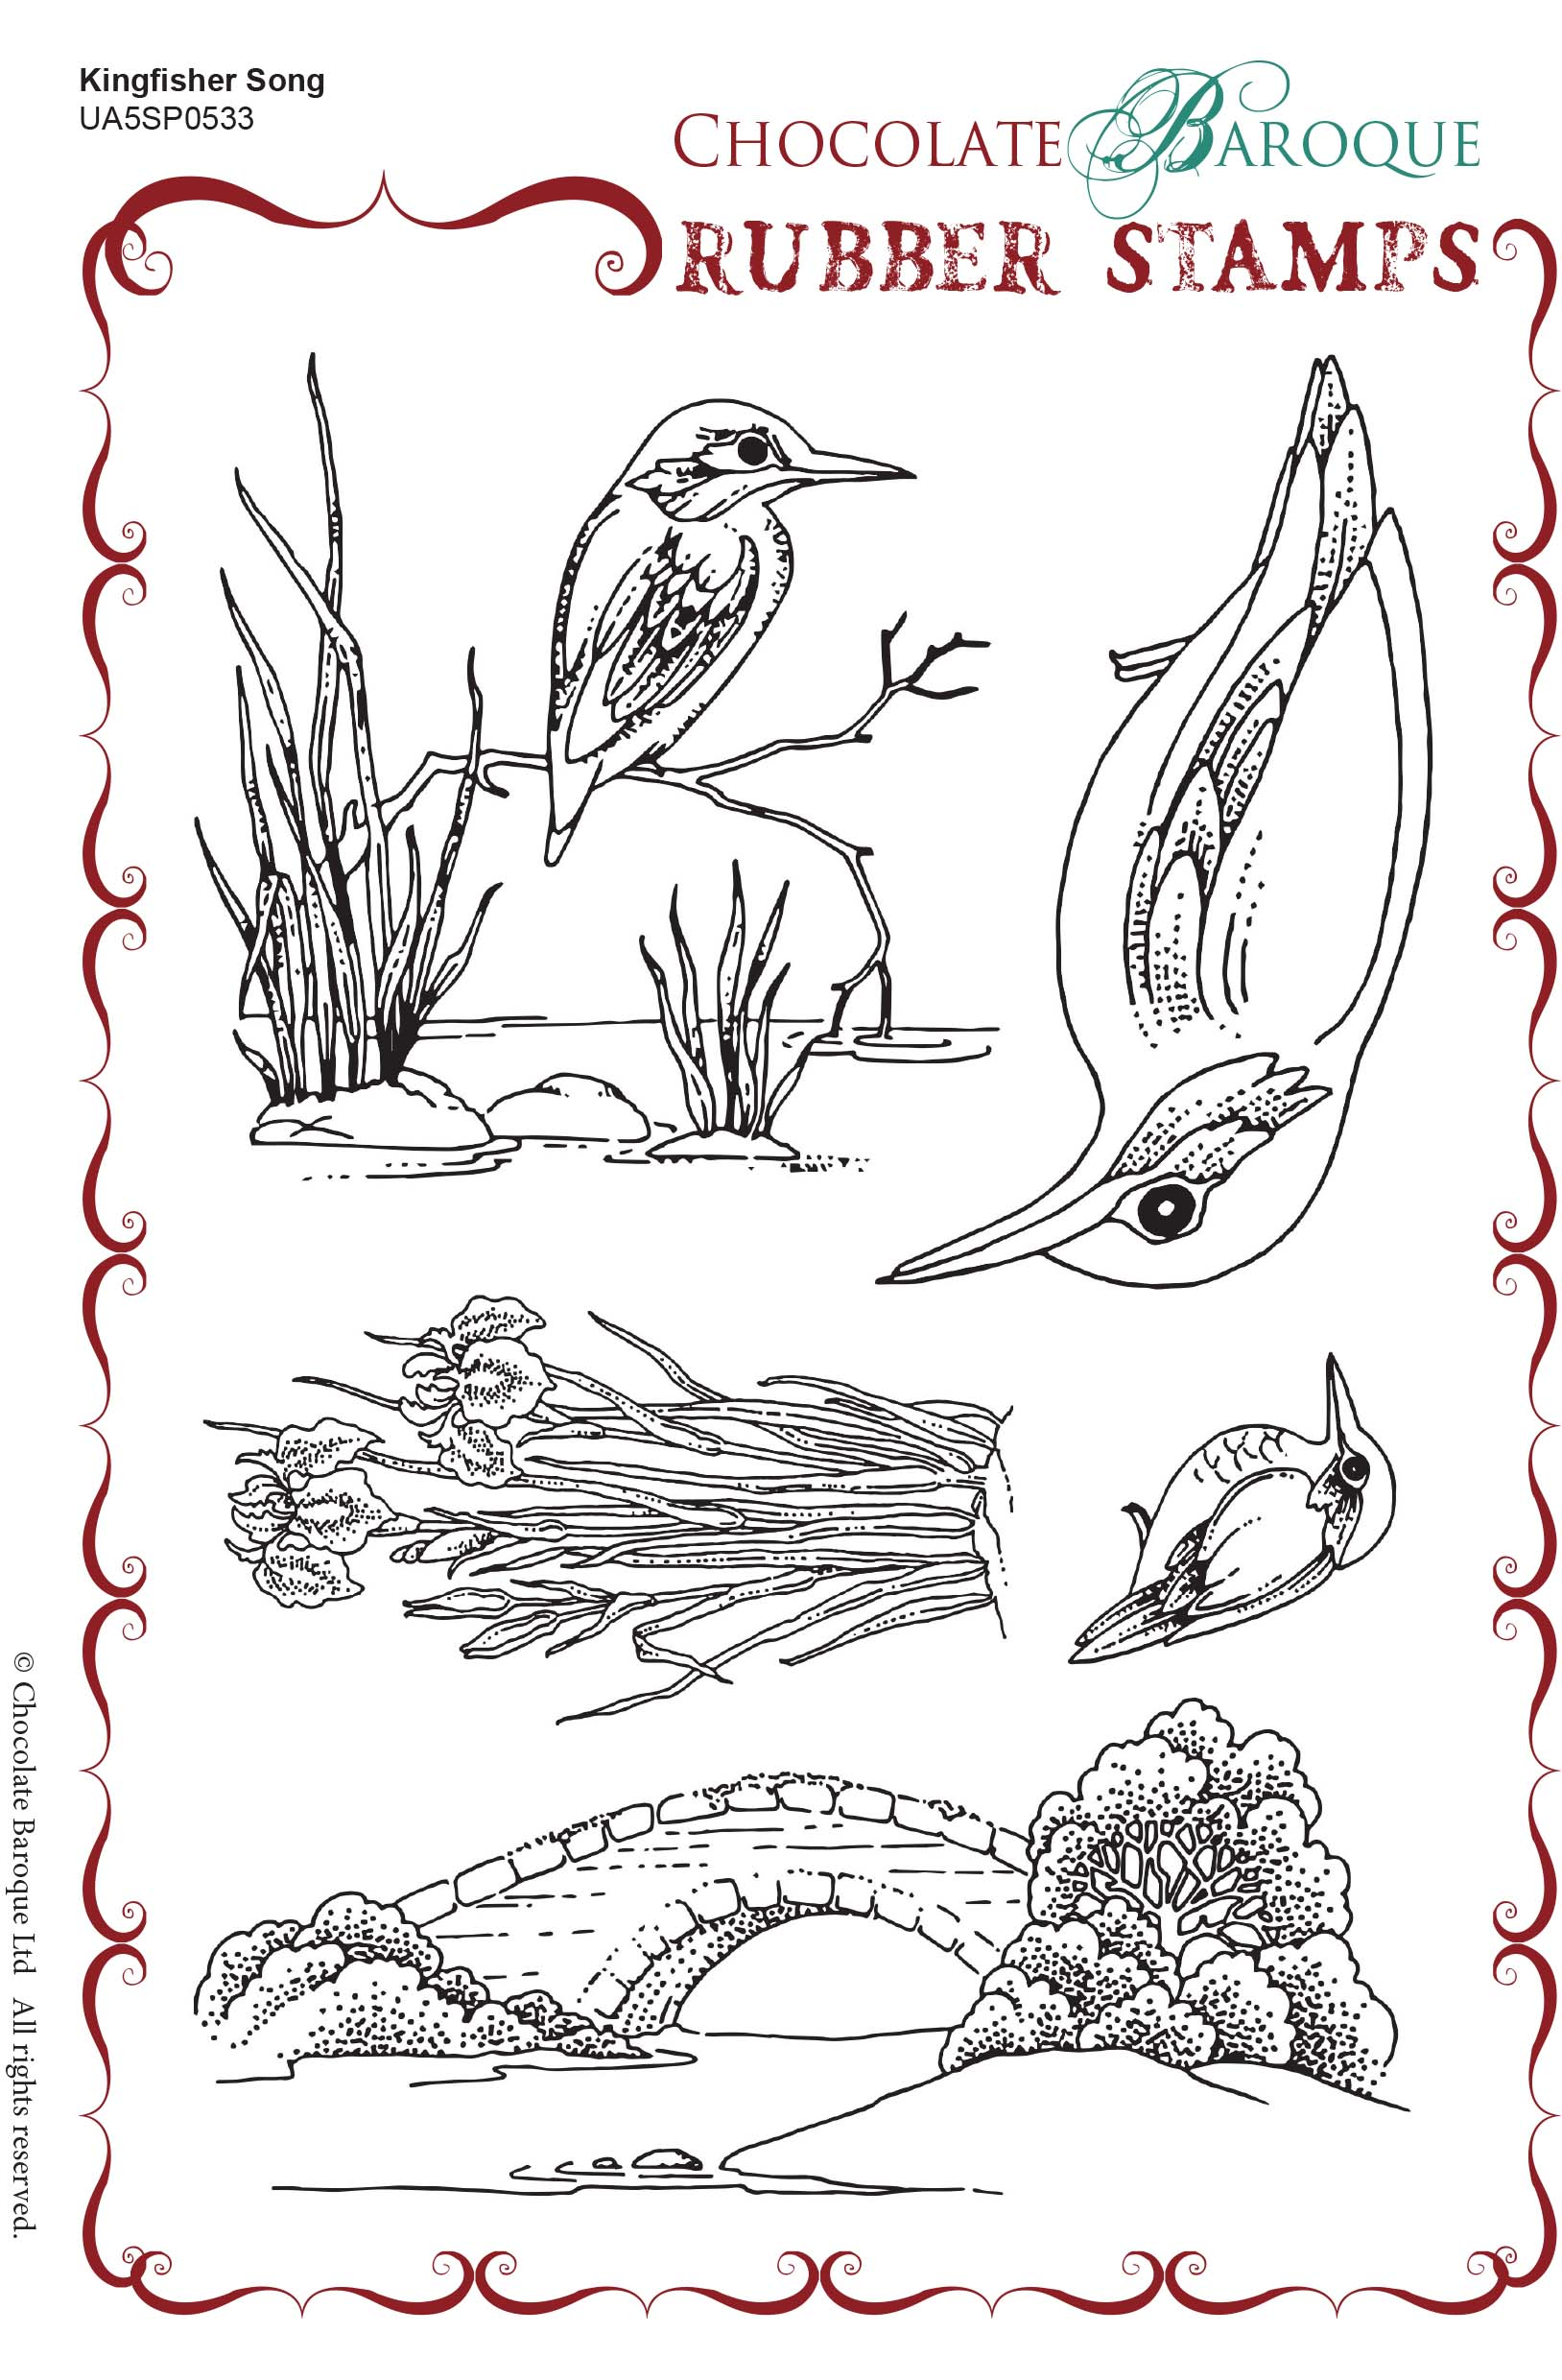 Kingfisher Song Rubber Stamp sheet - A5 - Chocolate Baroque